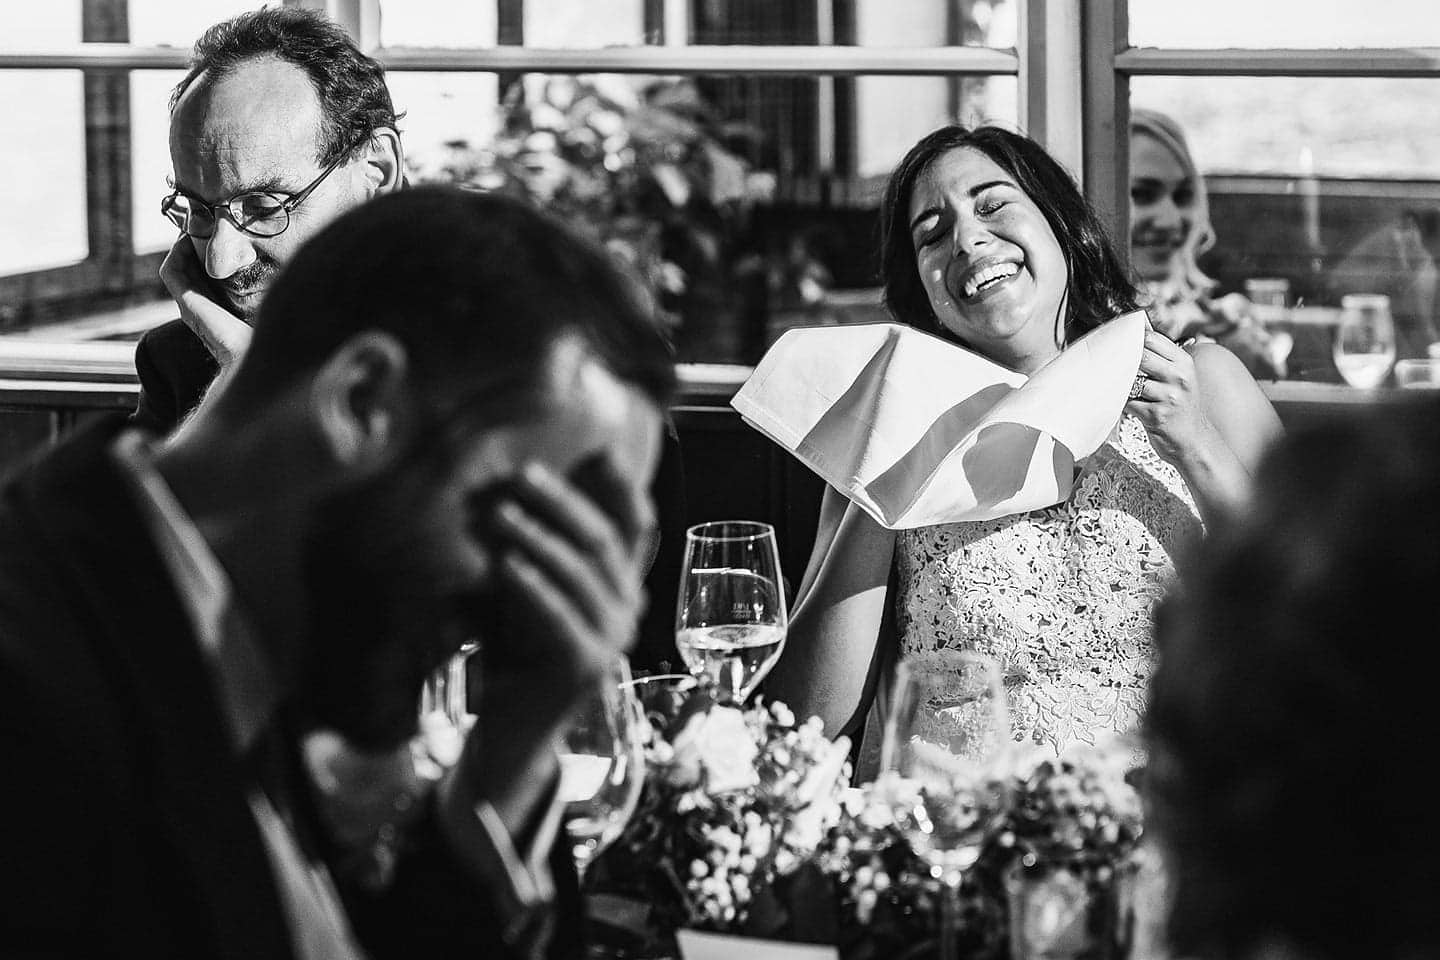 Best of wedding photography collection 2017 - by Aleks & Irena Kus 87